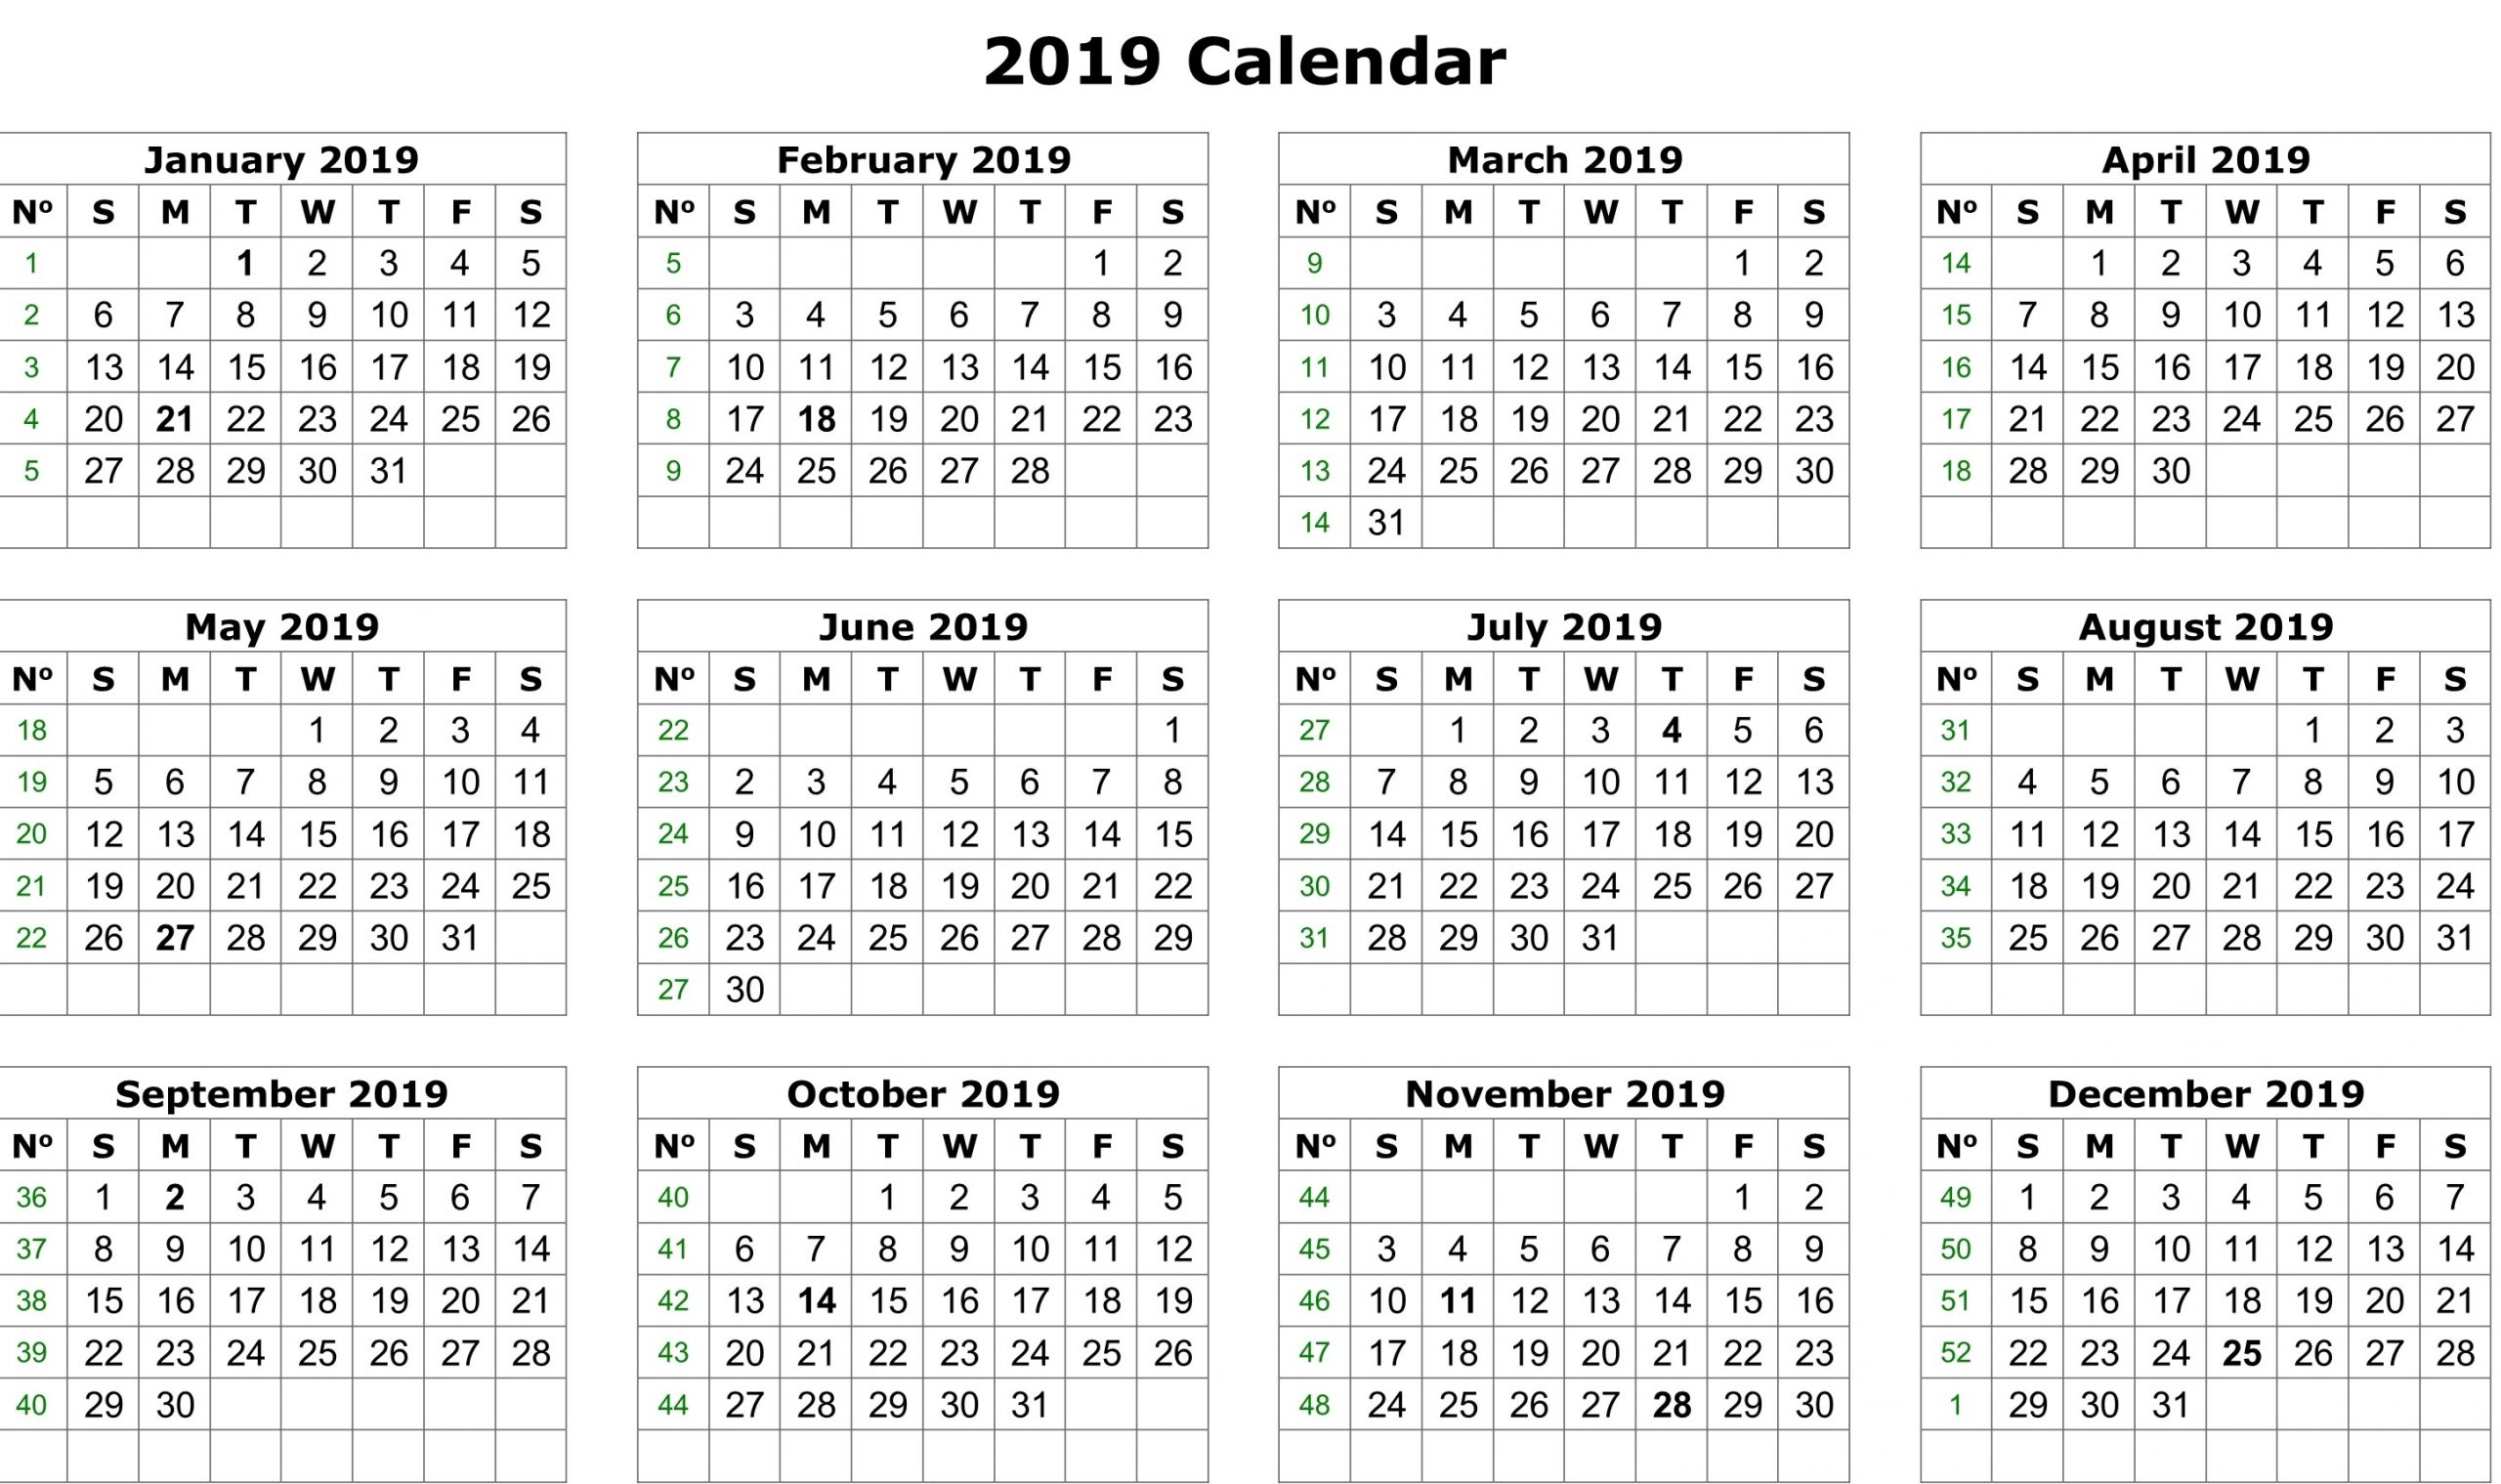 monthly work schedule template 2019  Fiscal Calendar 2019 Template   Free Printable 2019 ..